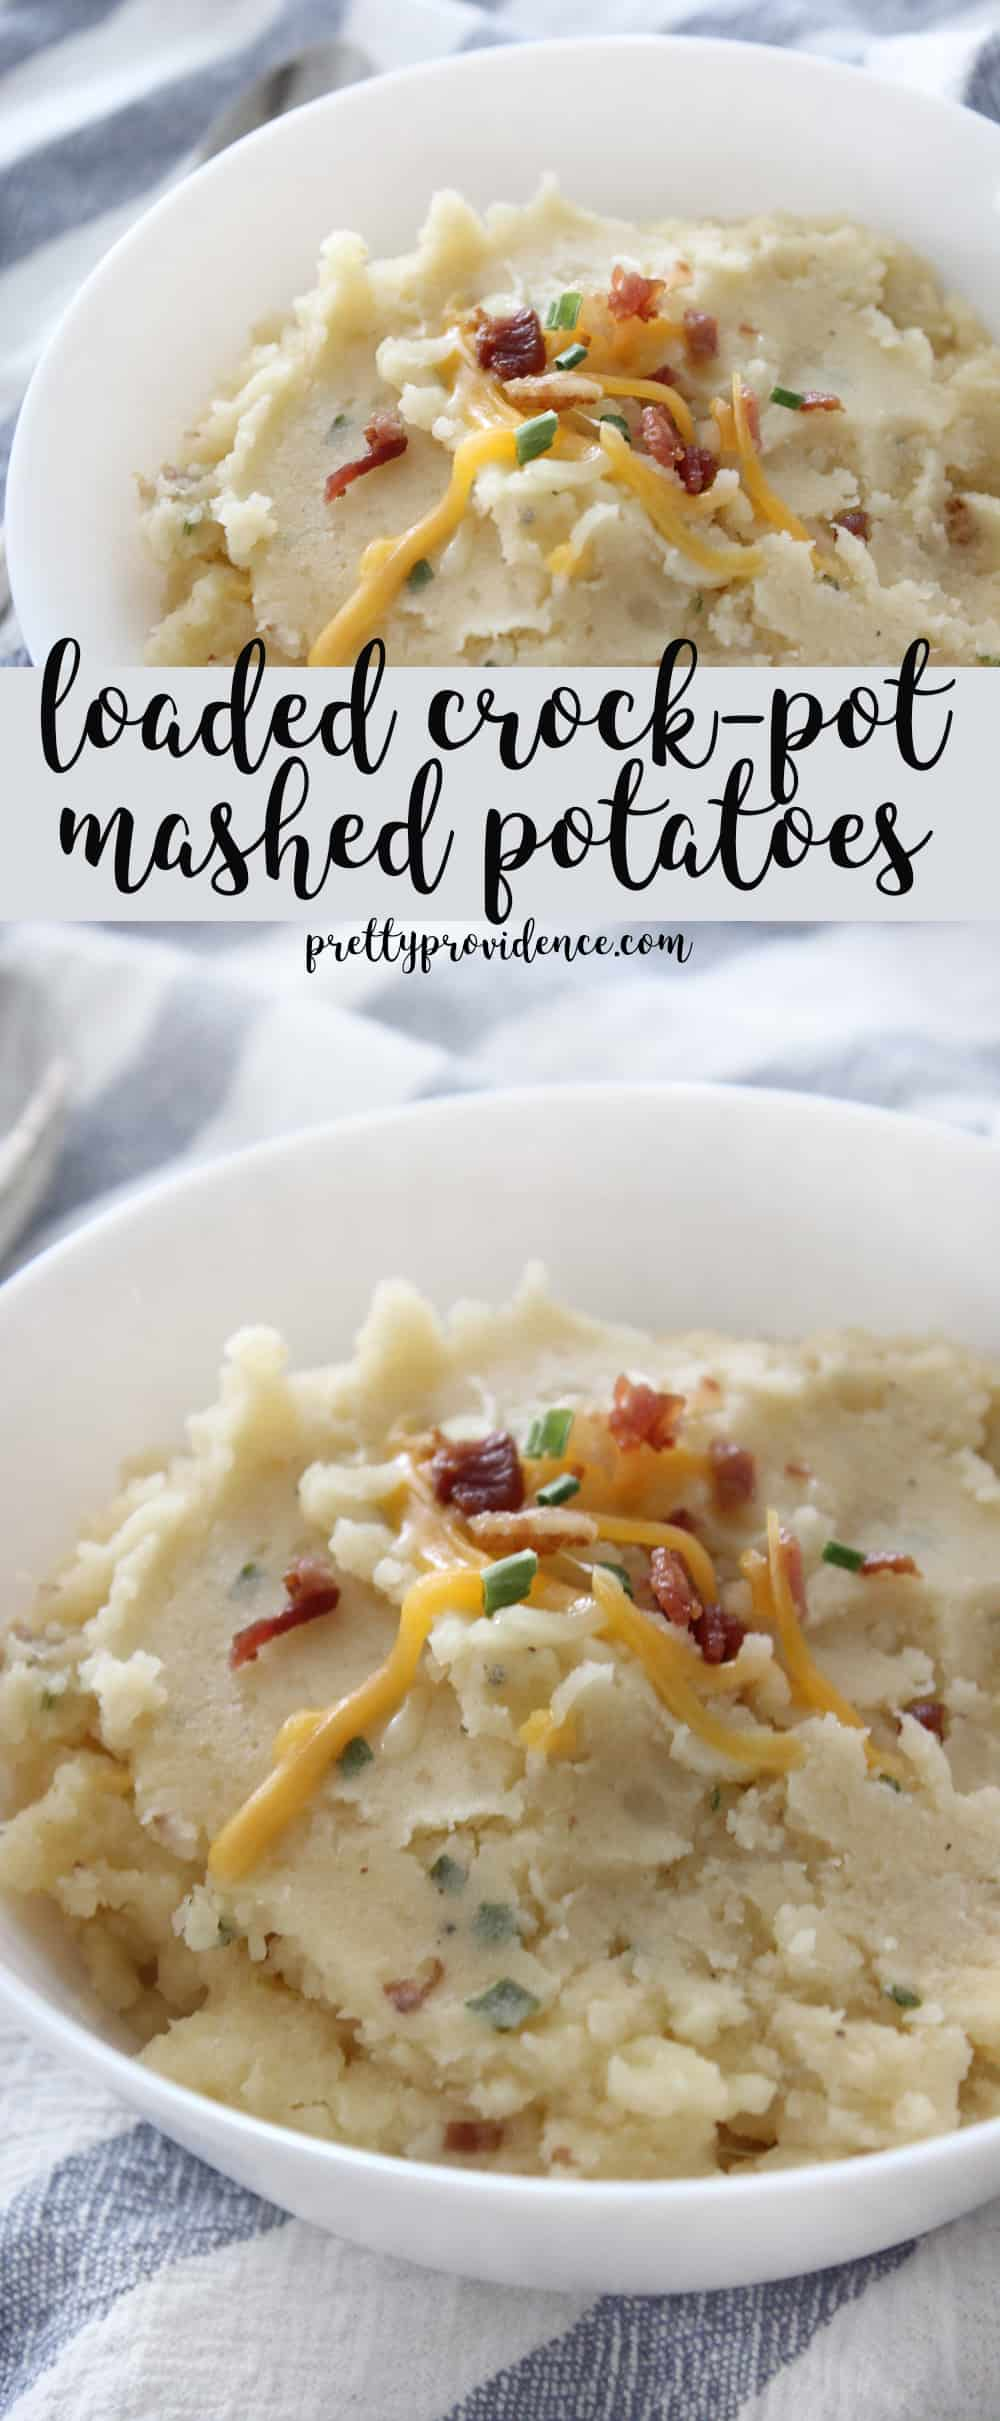 Slow cooker loaded mashed potatoes are the PERFECT side to bring to any pot luck gathering! So easy and so GOOD!